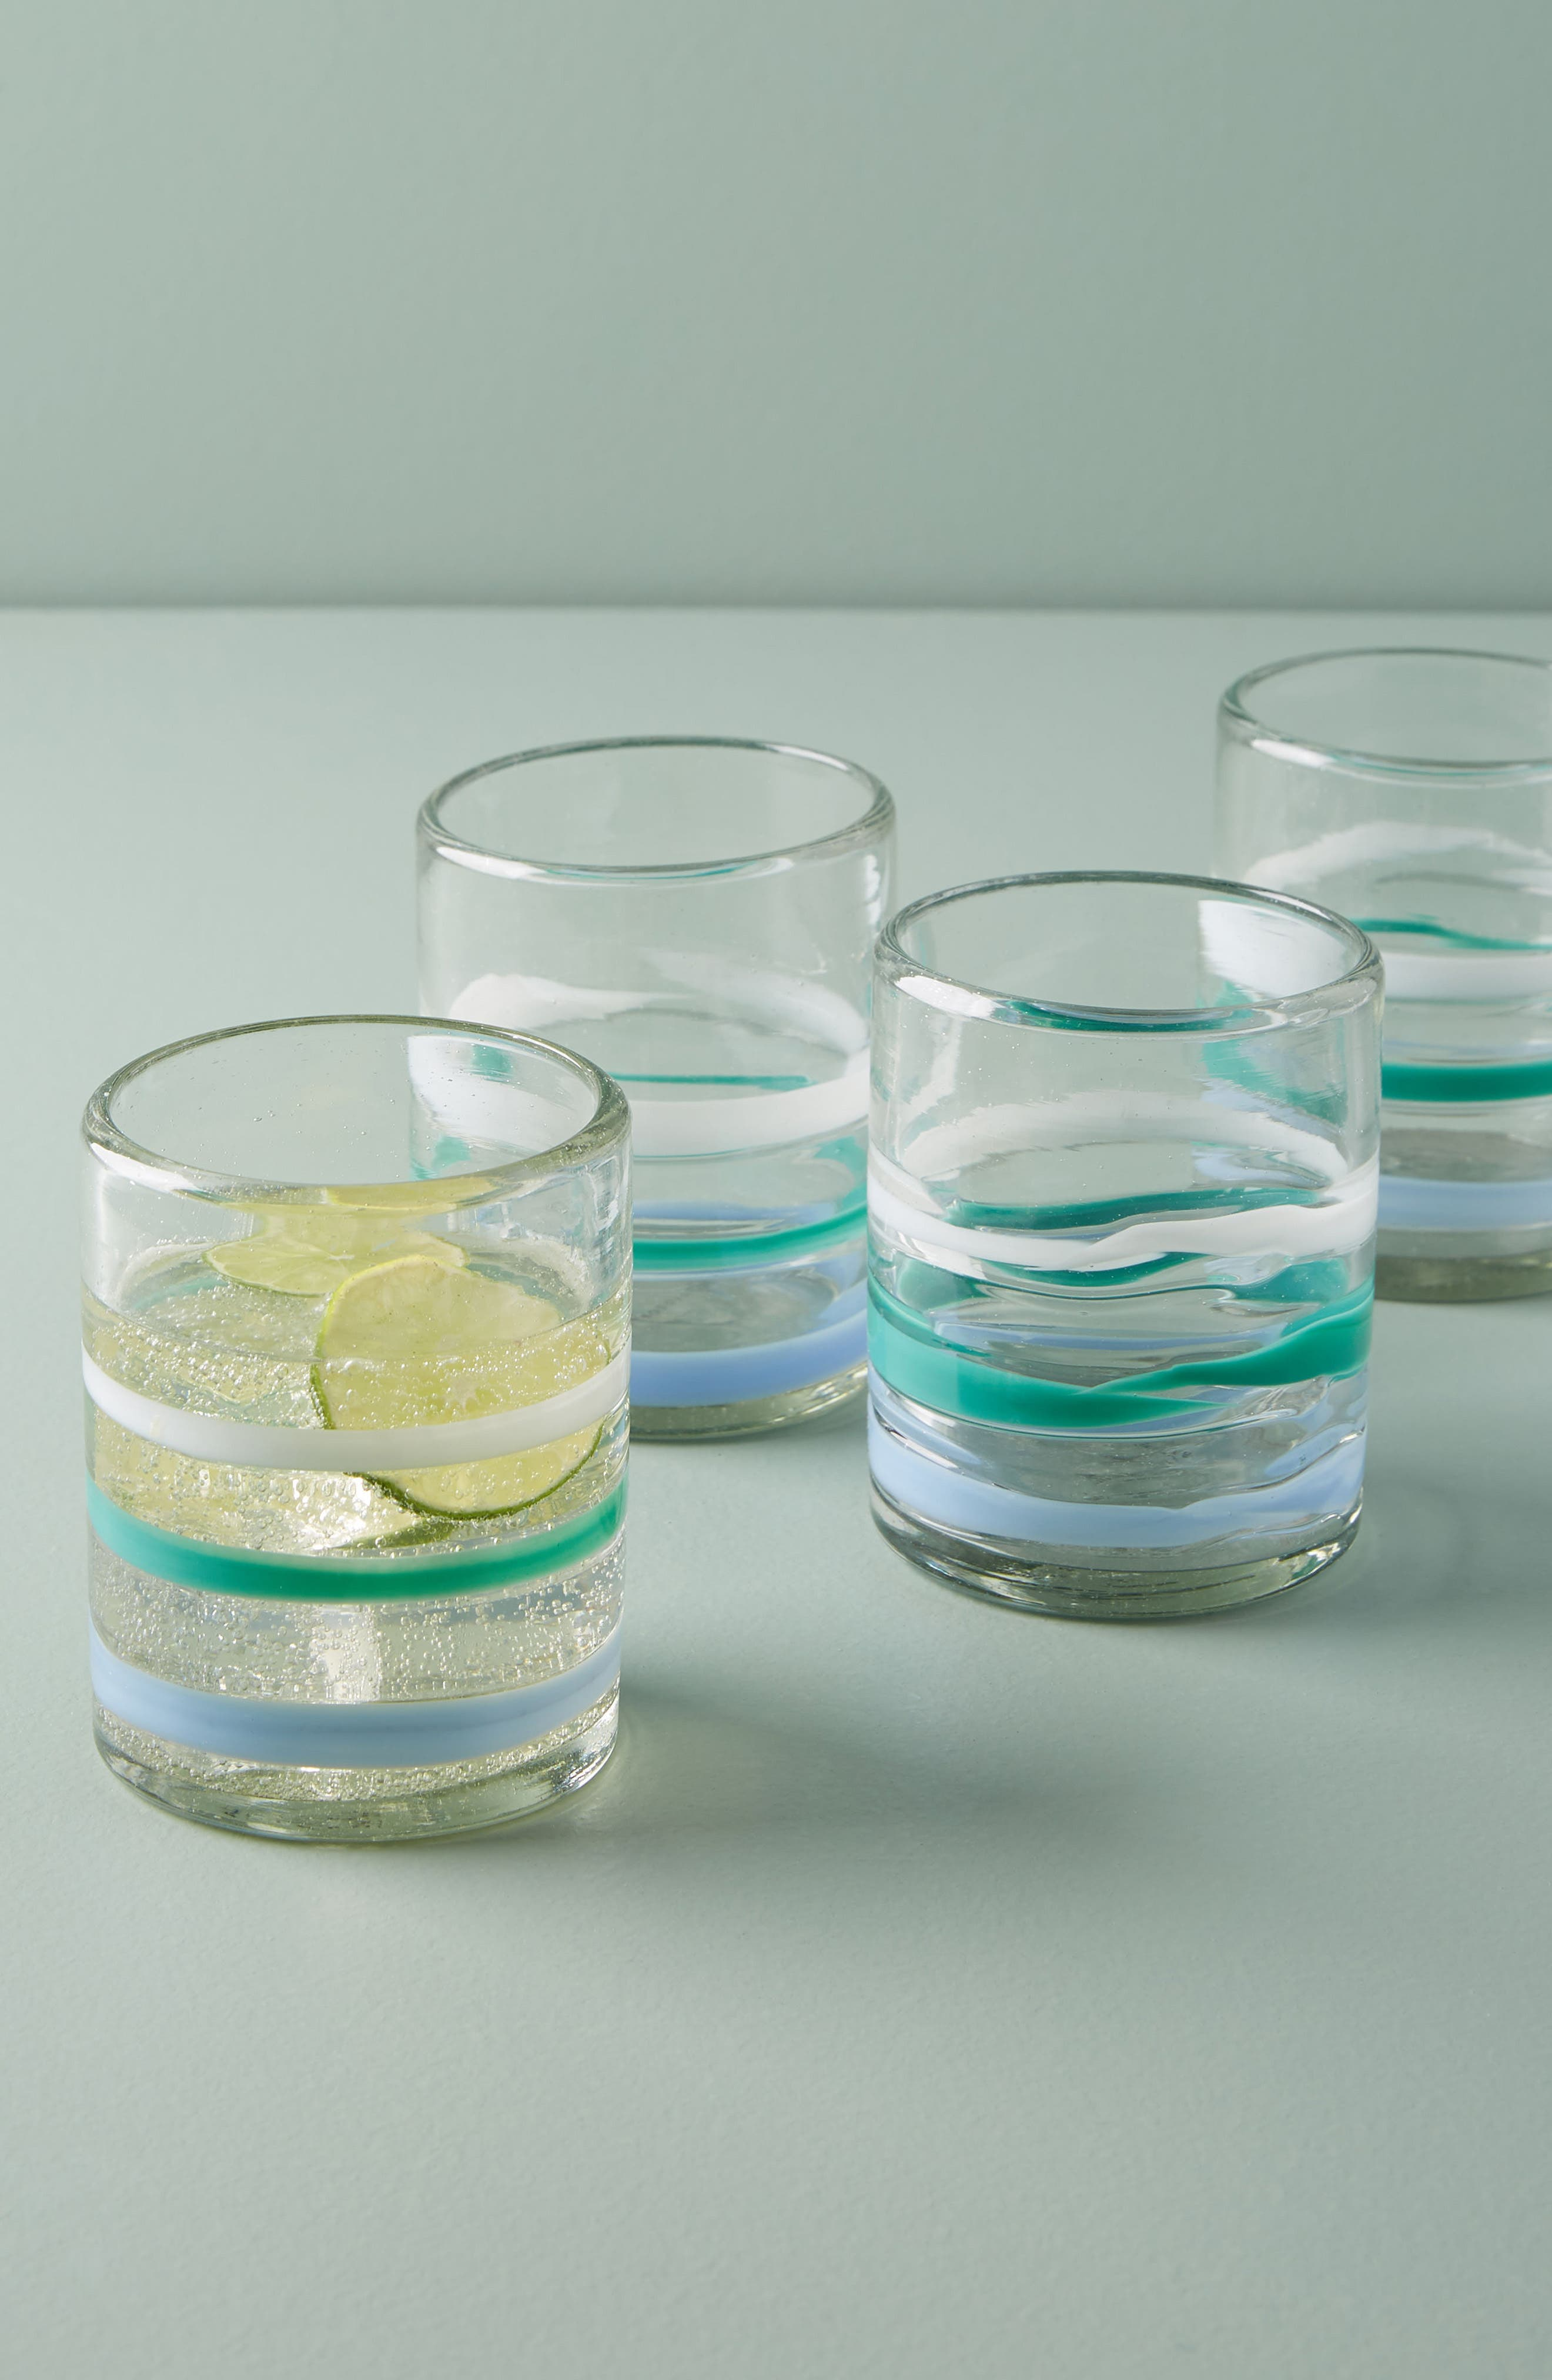 Anthropologie Pipiry Set of 4 Double Old Fashioned Glasses